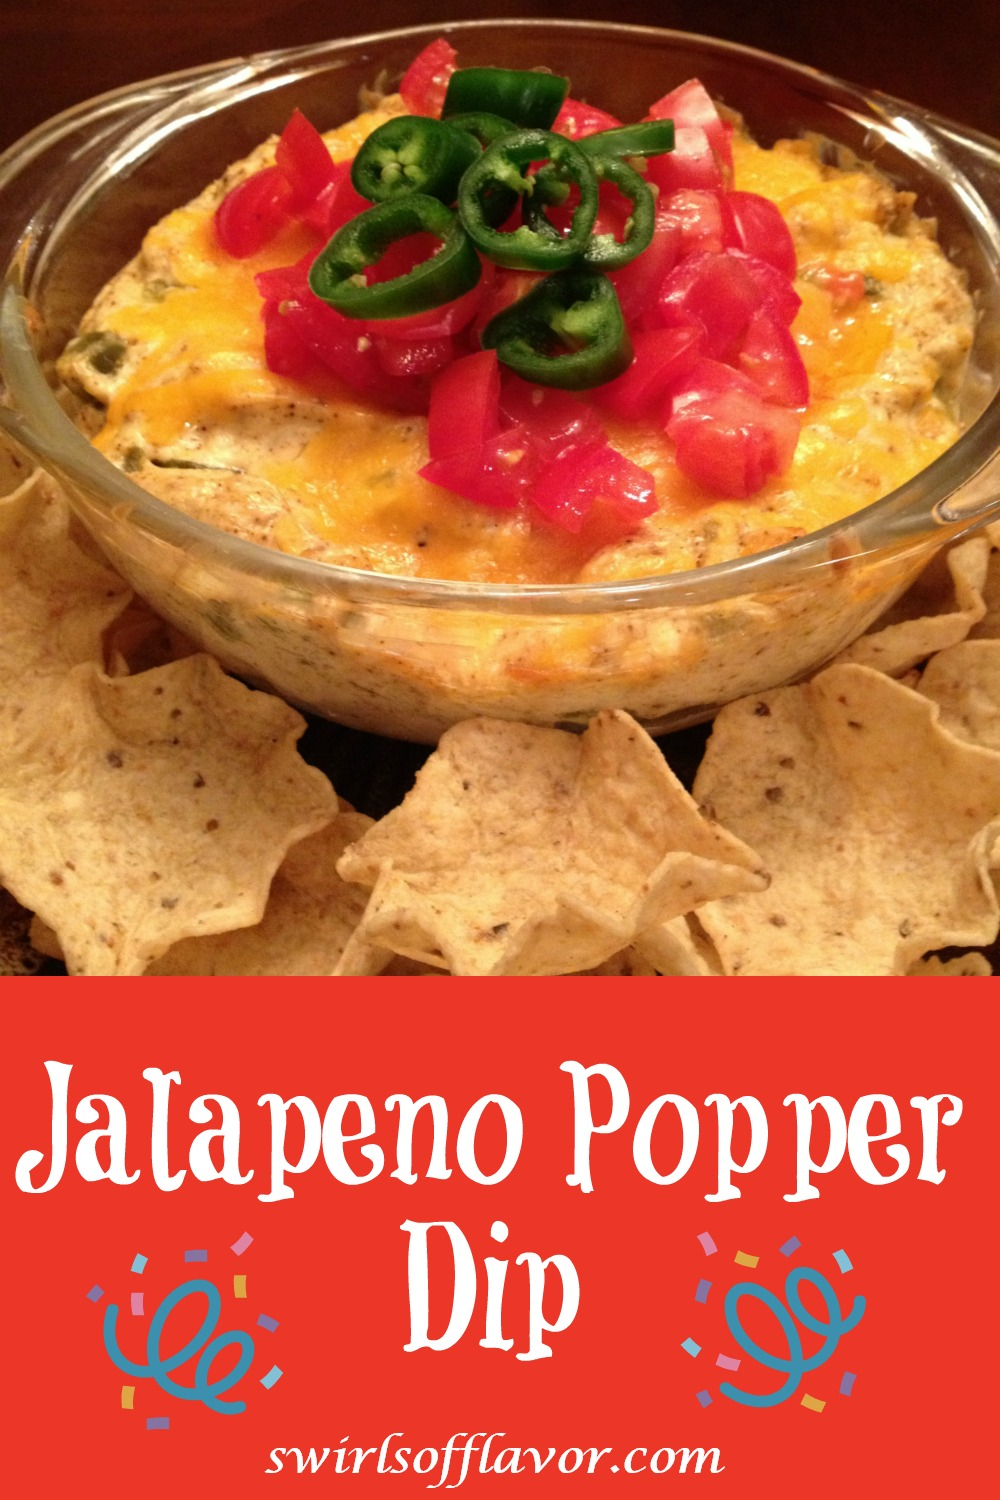 Jalapeno Popper Dip has all the flavors of jalapeno poppers without all the fuss of stuffing each jalapeno! Cheddar and Monterrey Jack cheeses combine with green chiles, pickled jalapenos and seasonings in a cream cheese and mayonnaise base for a kicking good dip recipe! #dip #appetizer #jalapeno #jalapenopoppers #easyrecipe #gameday #entertaining #cheese #breadbowl #swirlsofflavor